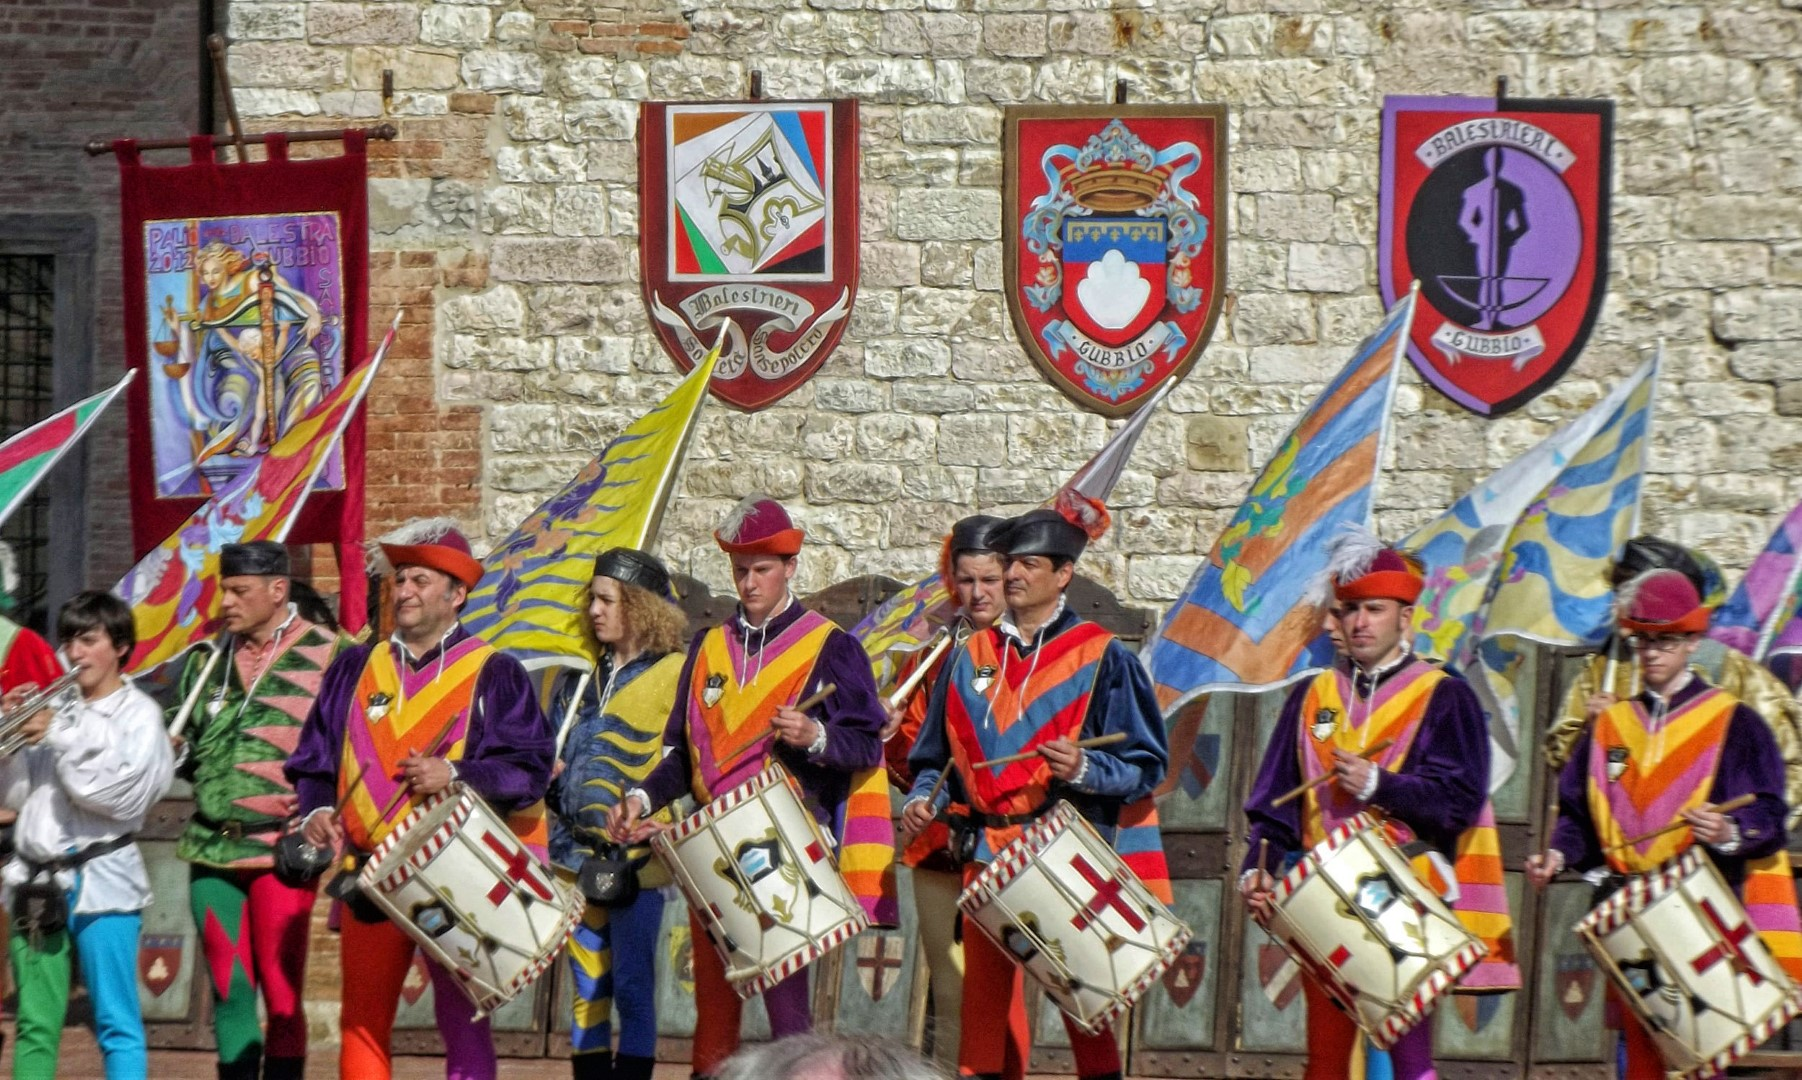 Colourful drummers and flags